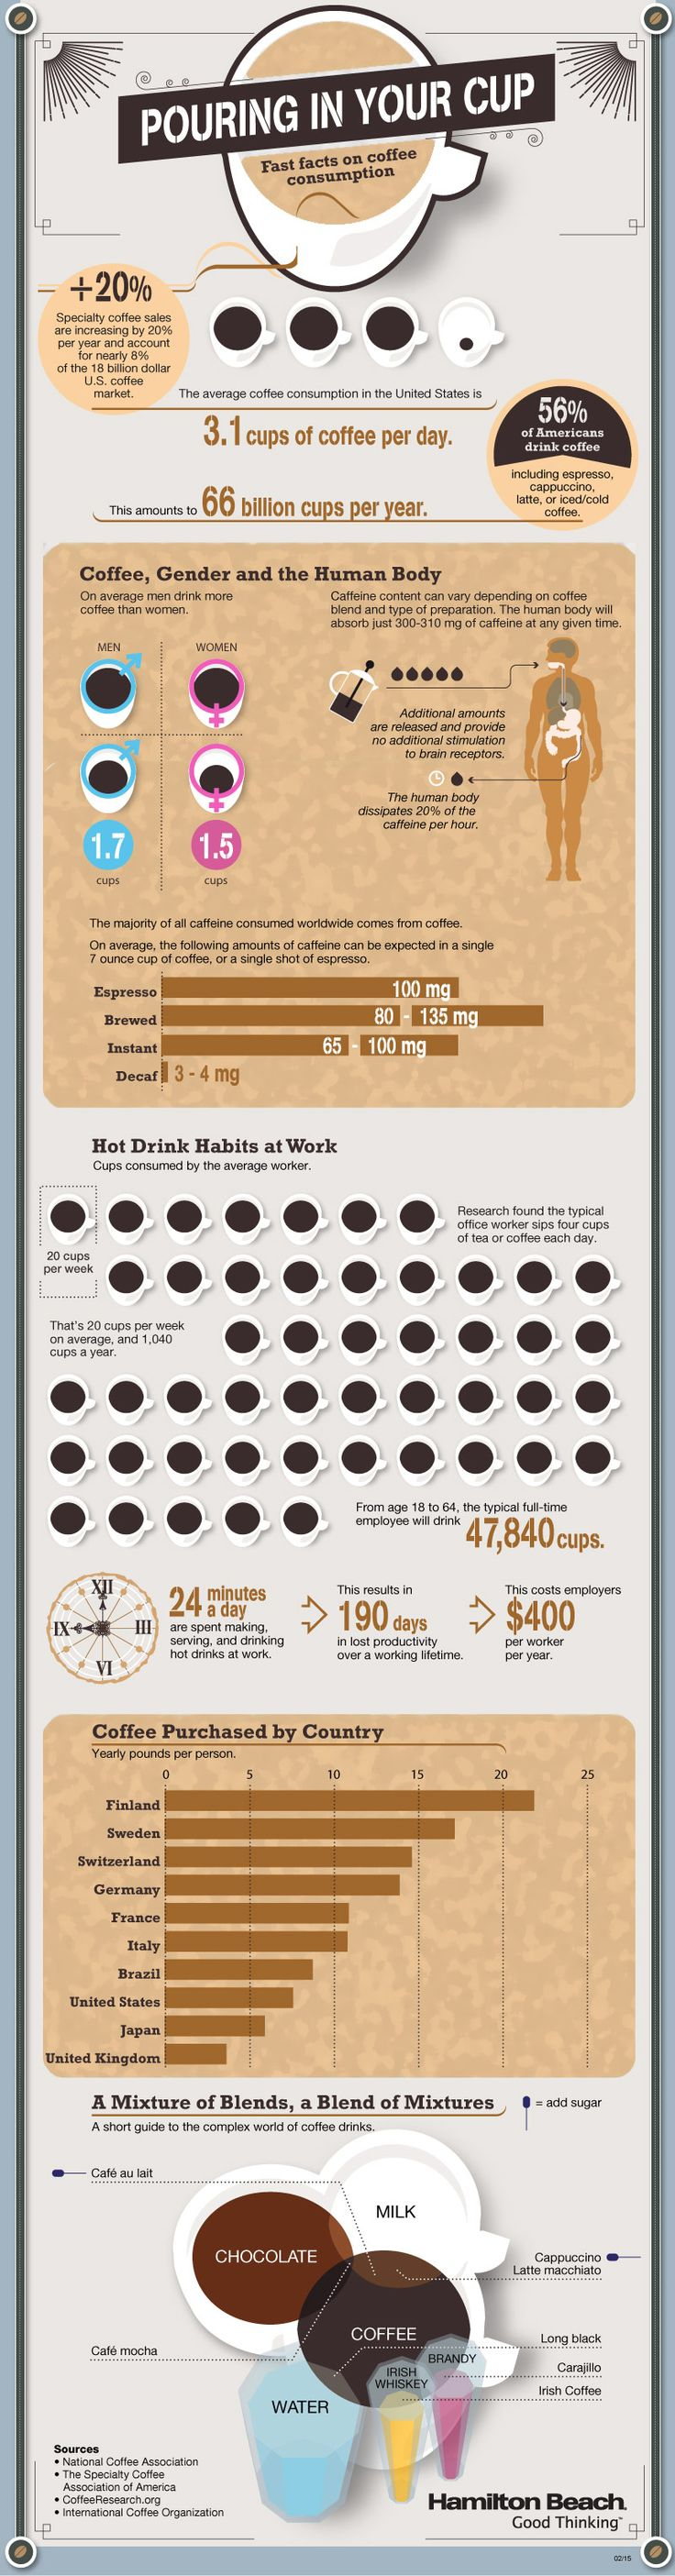 Fast Factual Coffee Drinking Statistics Infographic